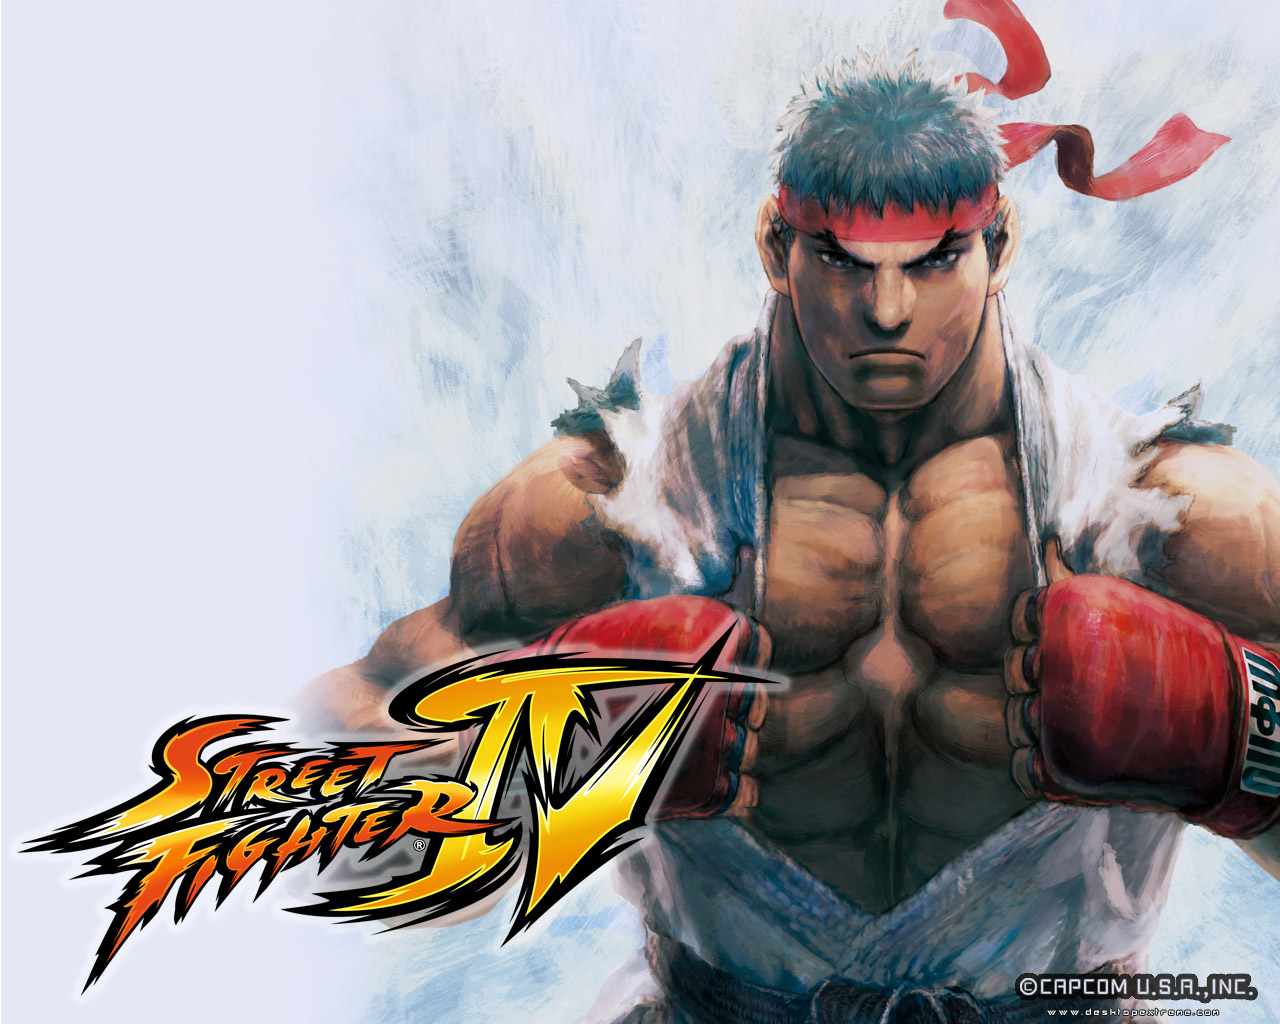 Super Street Fighter IV recibira DLC con modalidad Torneo gratis [Multiplayer FTW!]